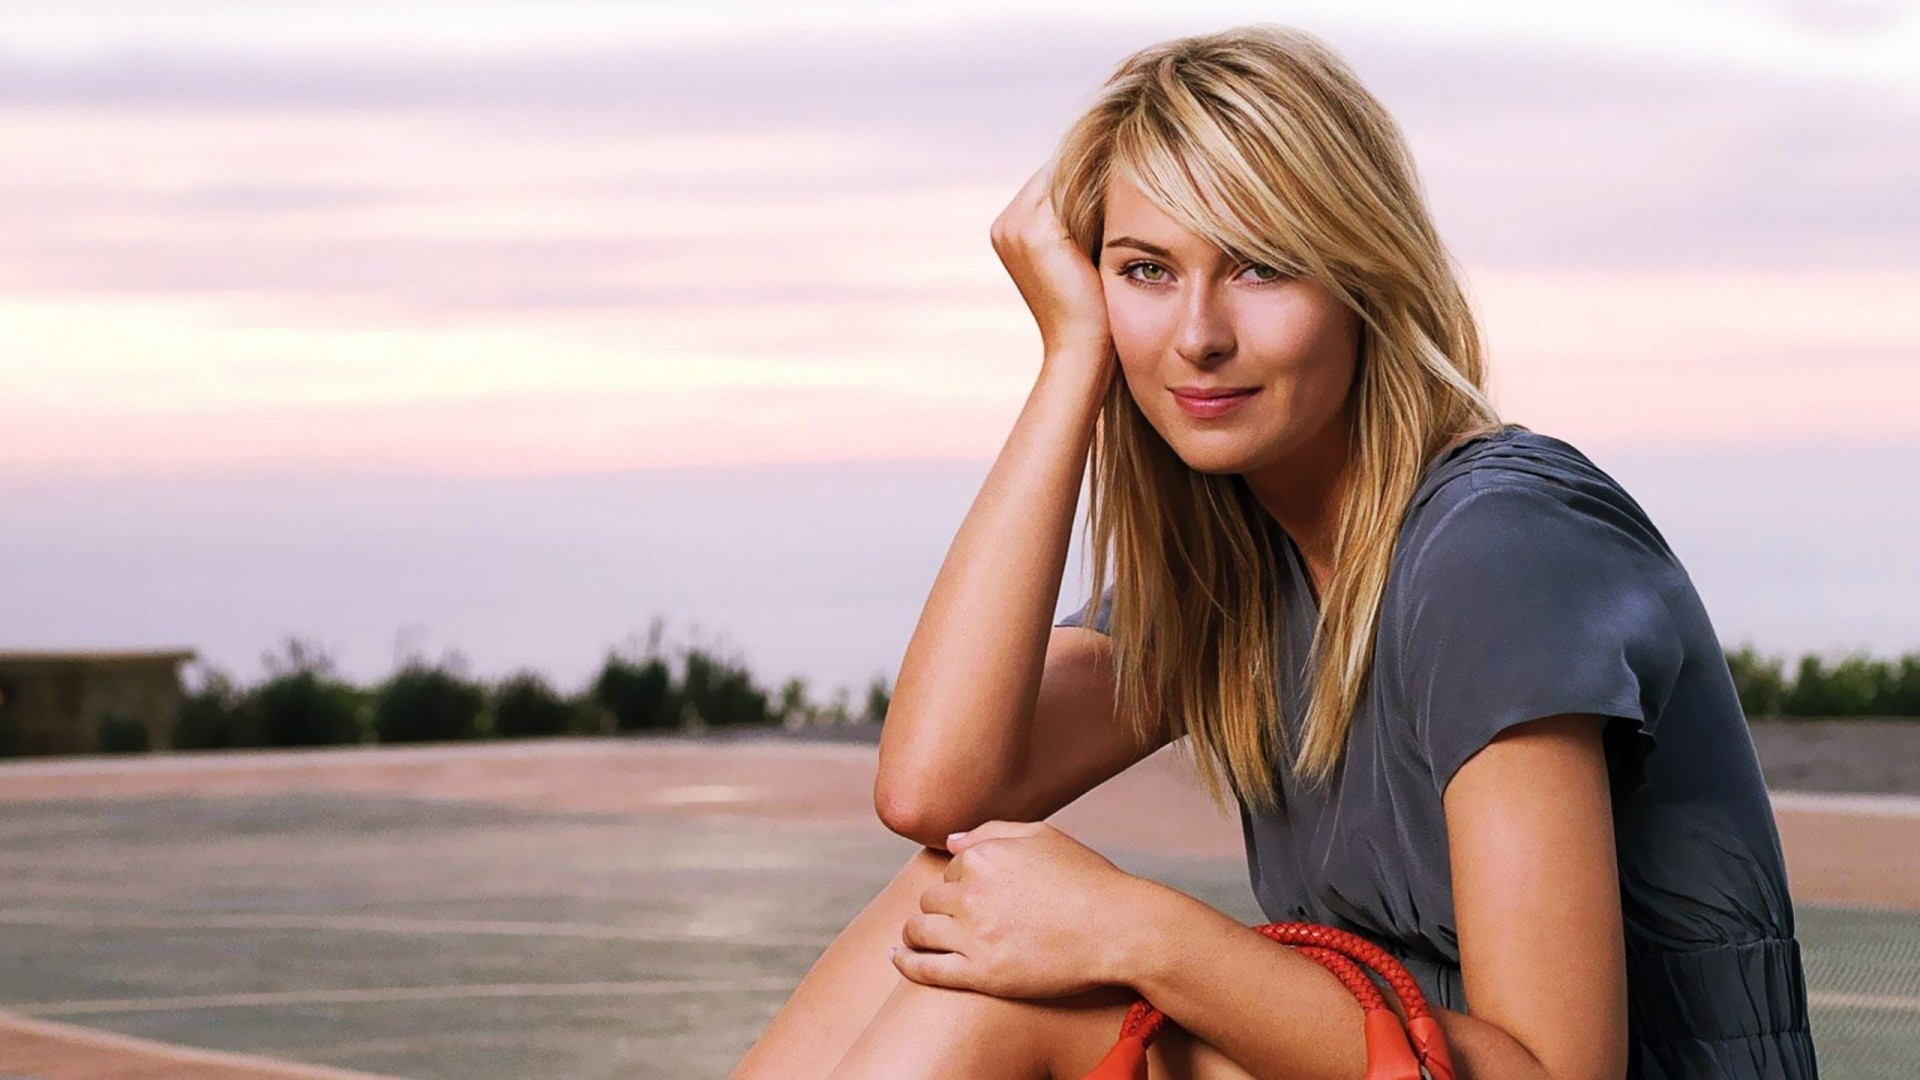 Sharapova Wallpapers 4k For Your Phone And Desktop Screen